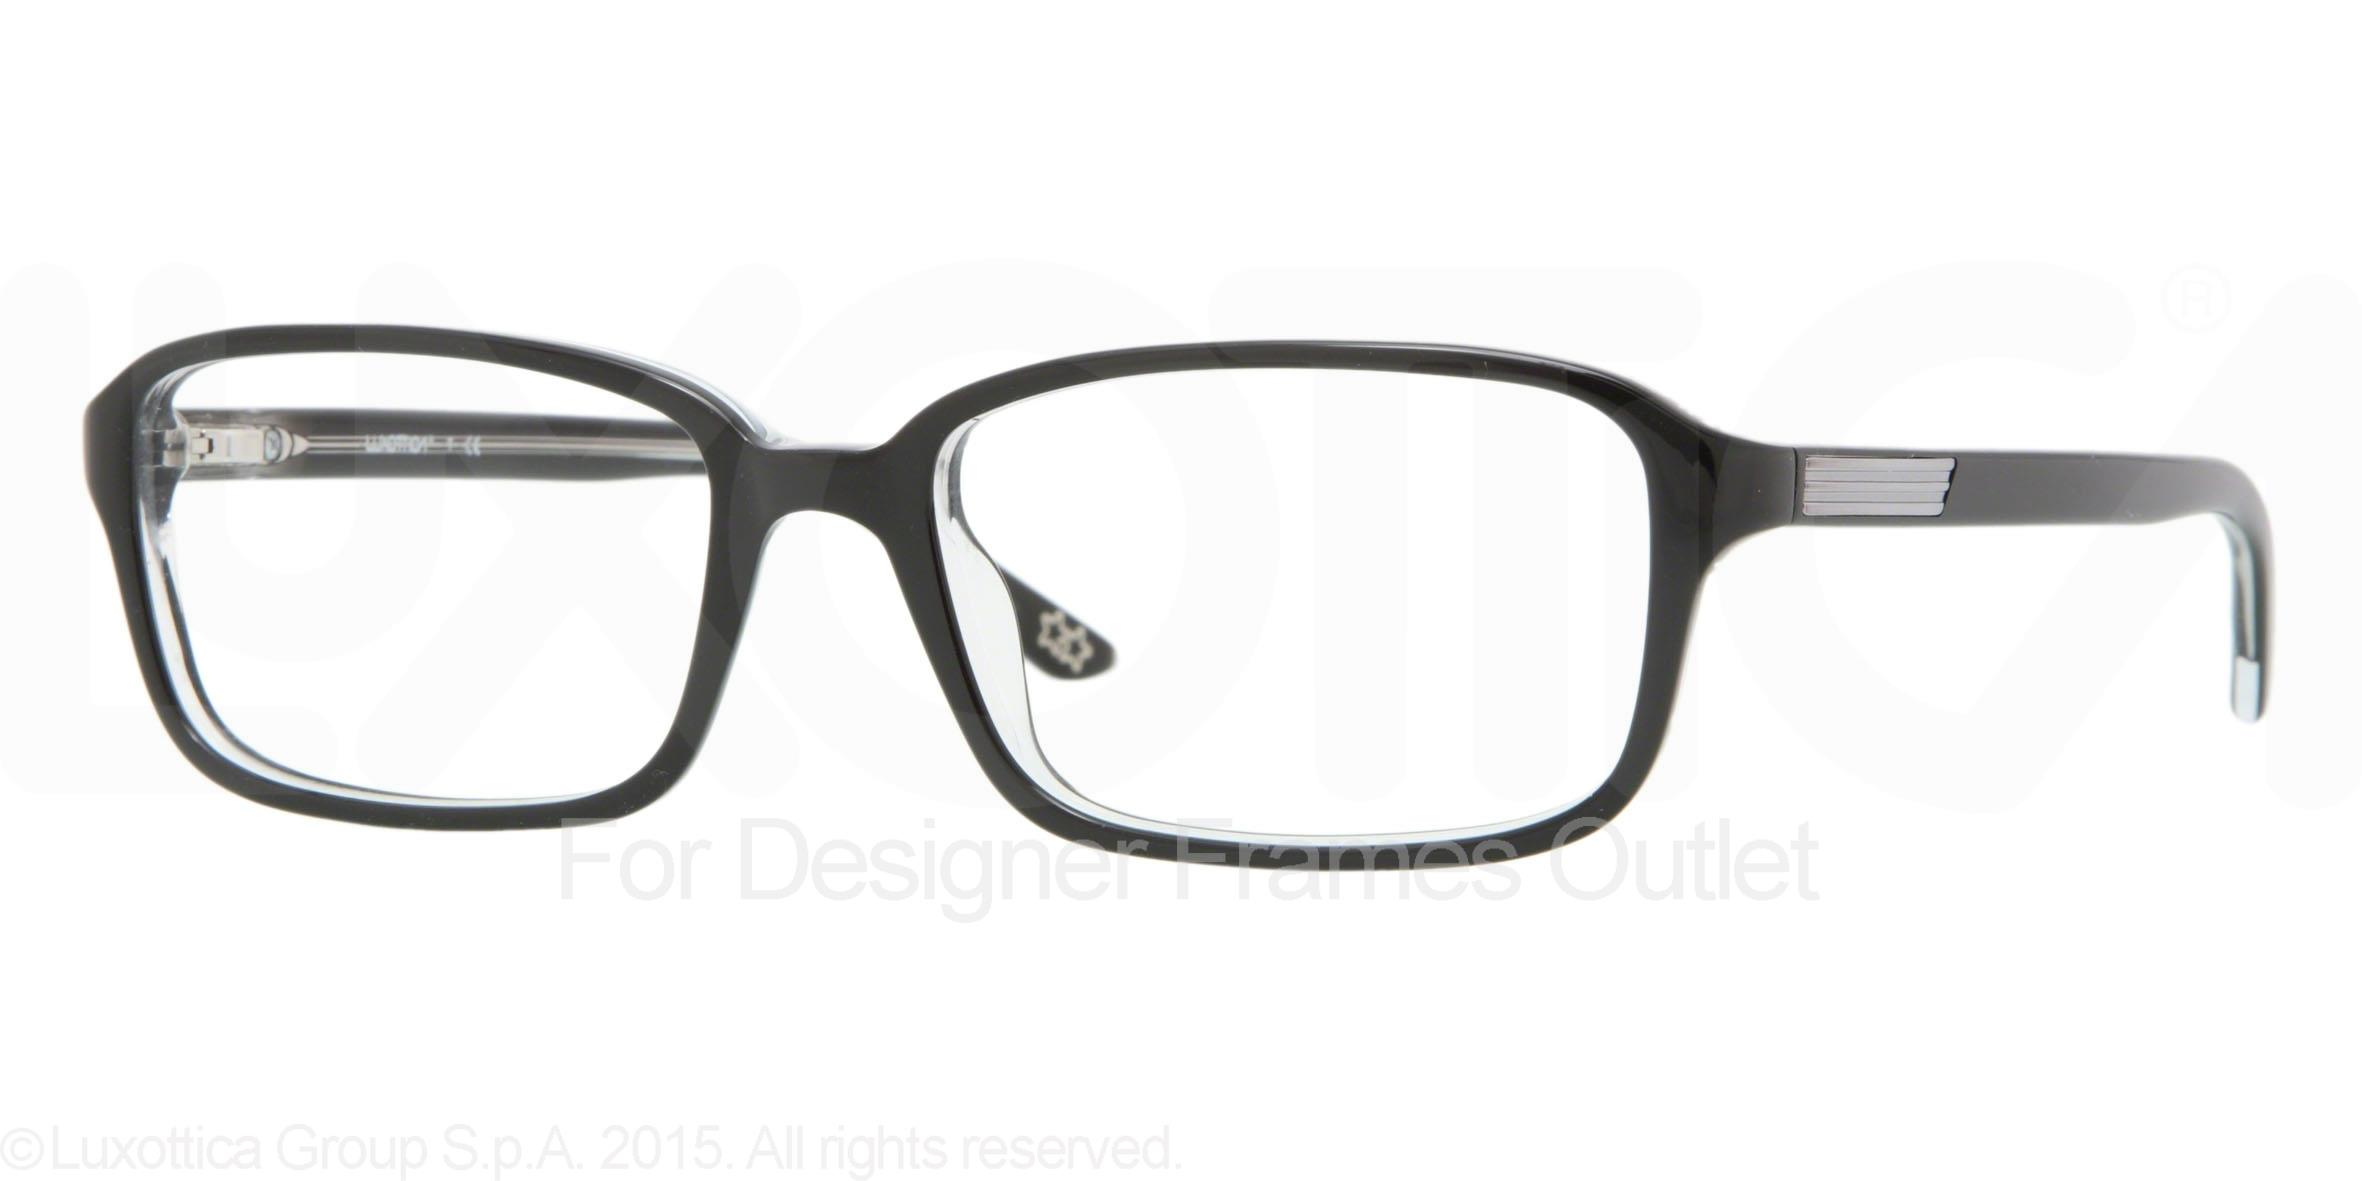 Picture of Luxottica LU3208